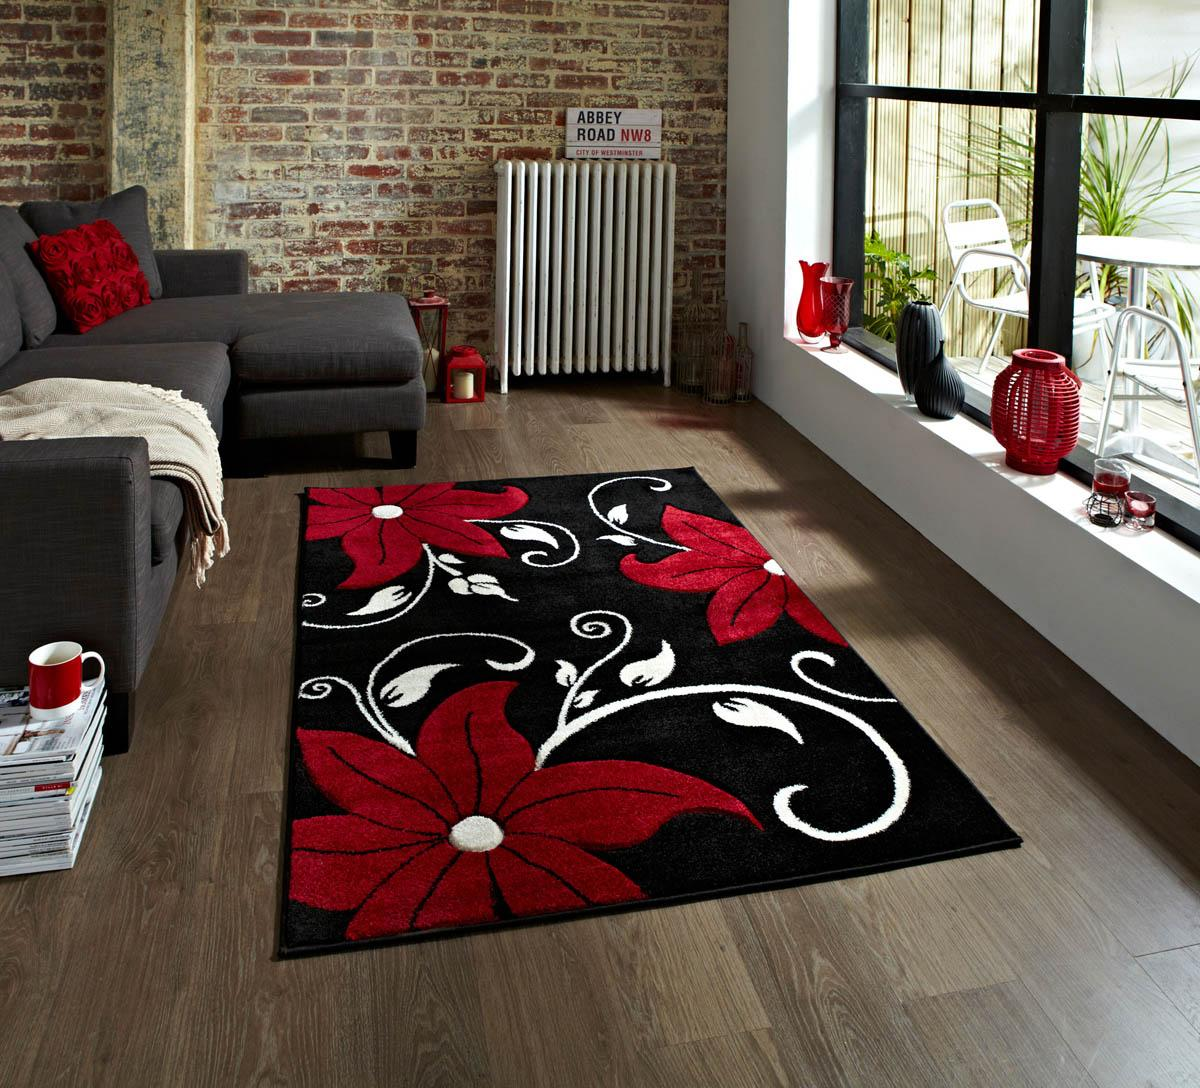 Verona OC15 Rug Black And Red Cheap Designer Rugs And Mats UK Delivery